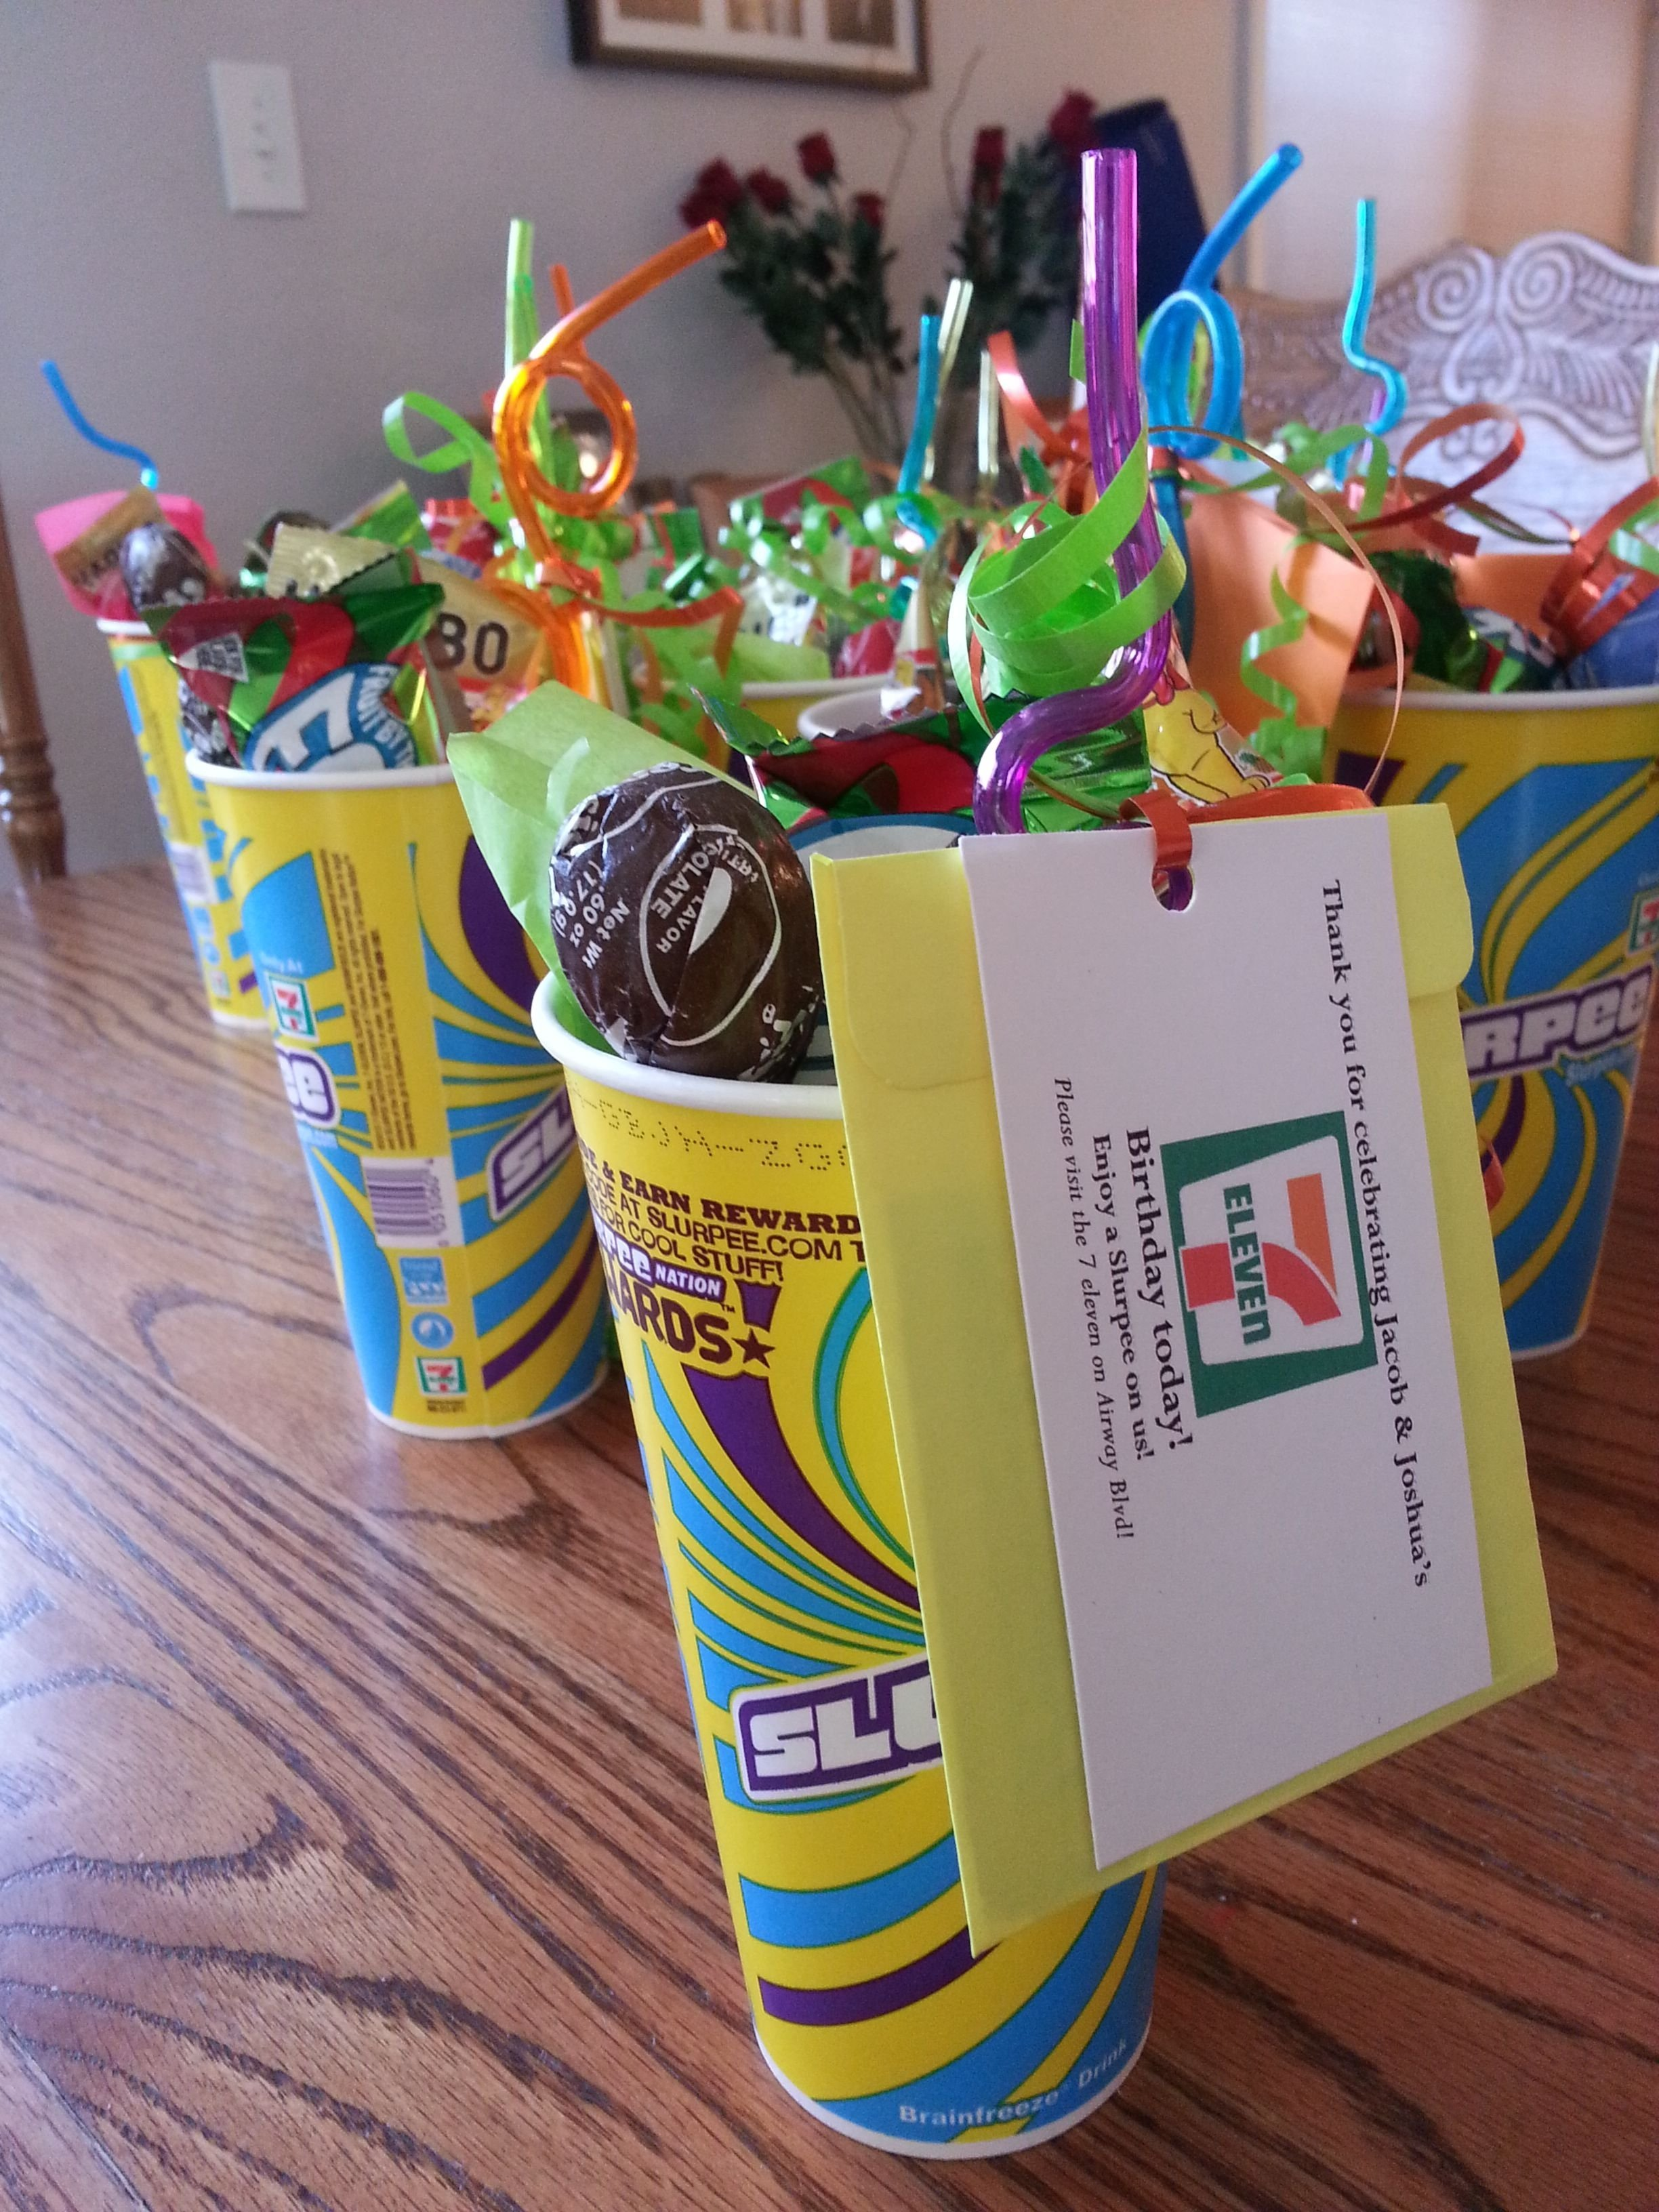 10 Stylish 7 Yr Old Boy Birthday Party Ideas my boys turned 7 and 11 years old and their birthdays are very close 32 2021